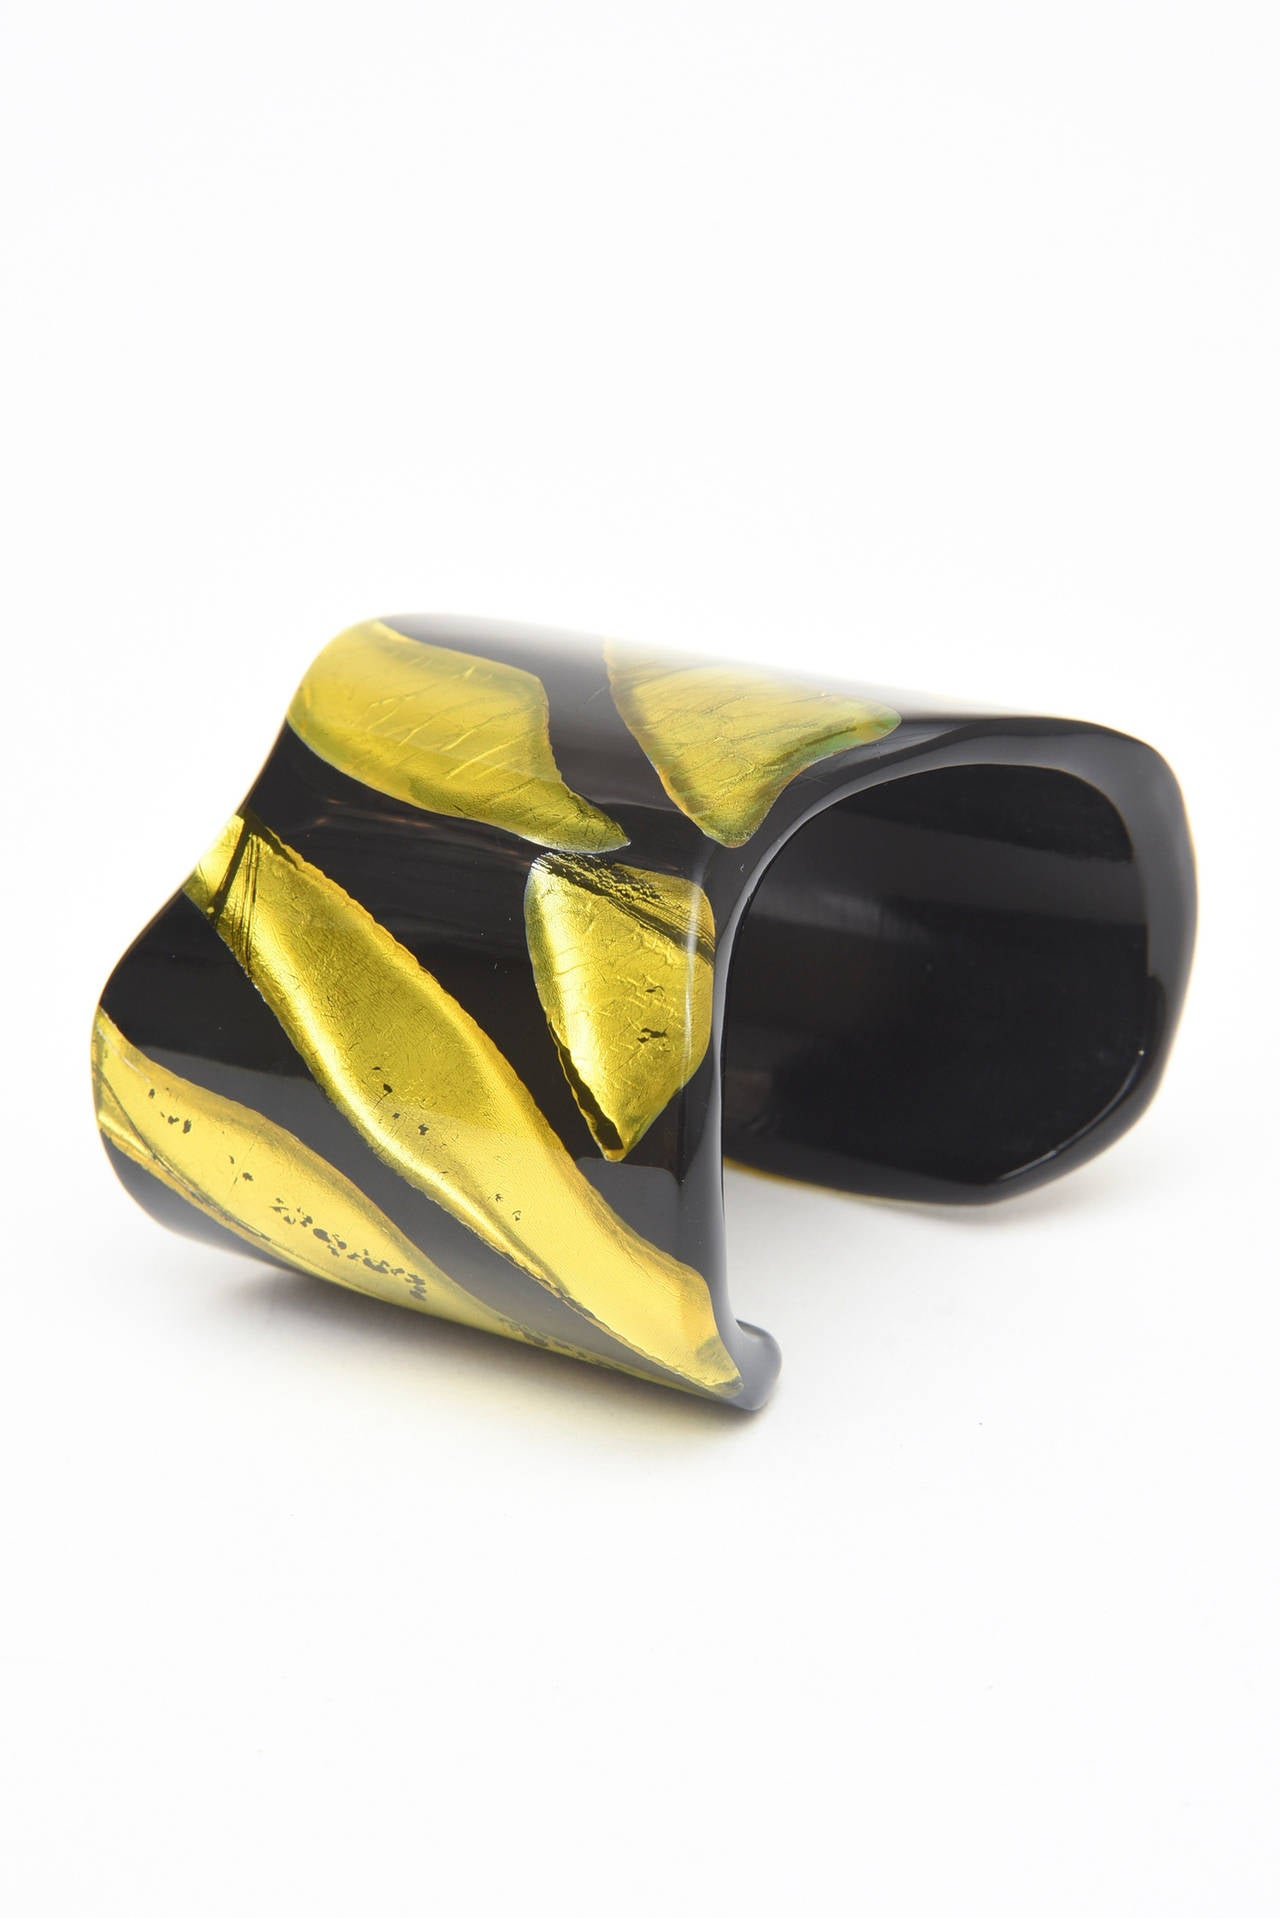 The juxtaposition of embedded chartreuse resin that looks like foil against black plexiglass becomes almost 3 dimensional. This sculptural one of a kind cuff is signed Vigneri 1984 copyright.  It is Italian and has the shape of the sterling bone